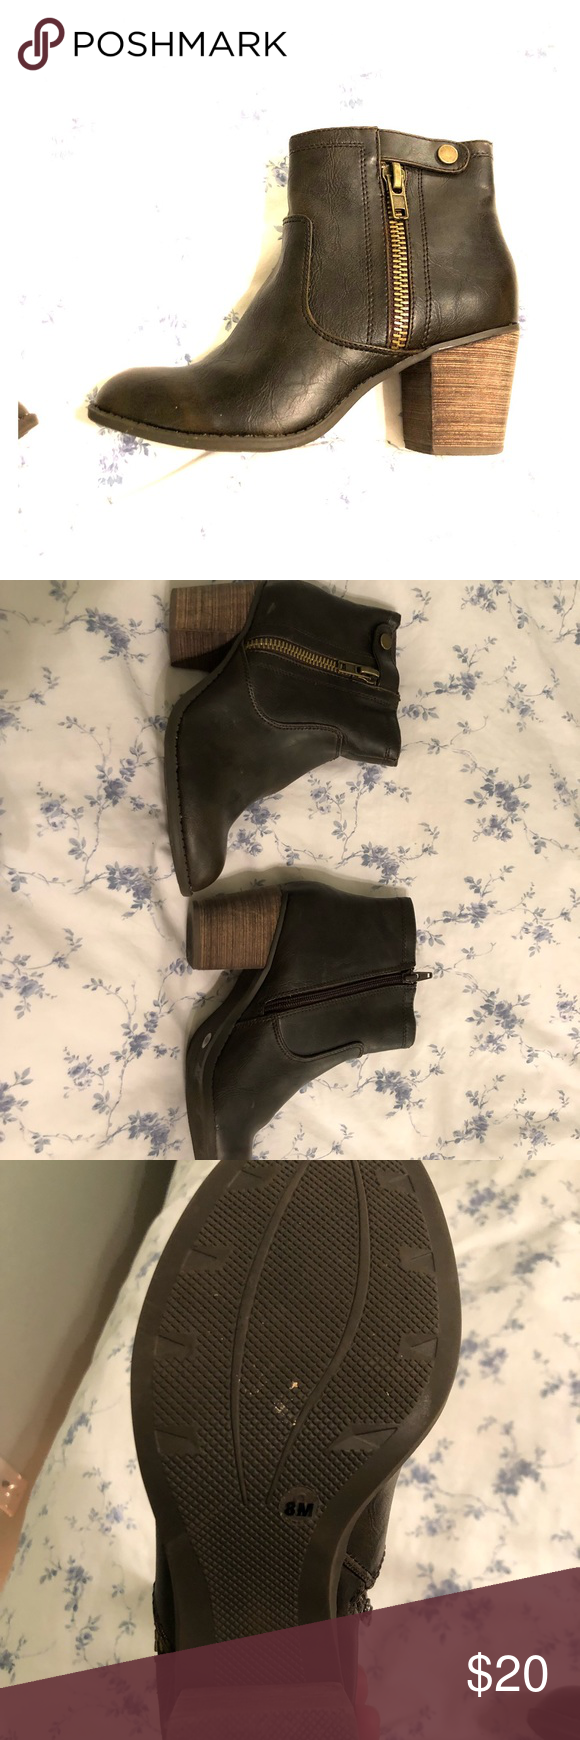 c2d212d14e4d Booties Size 8 booties from dsw DSW Shoes Ankle Boots   Booties